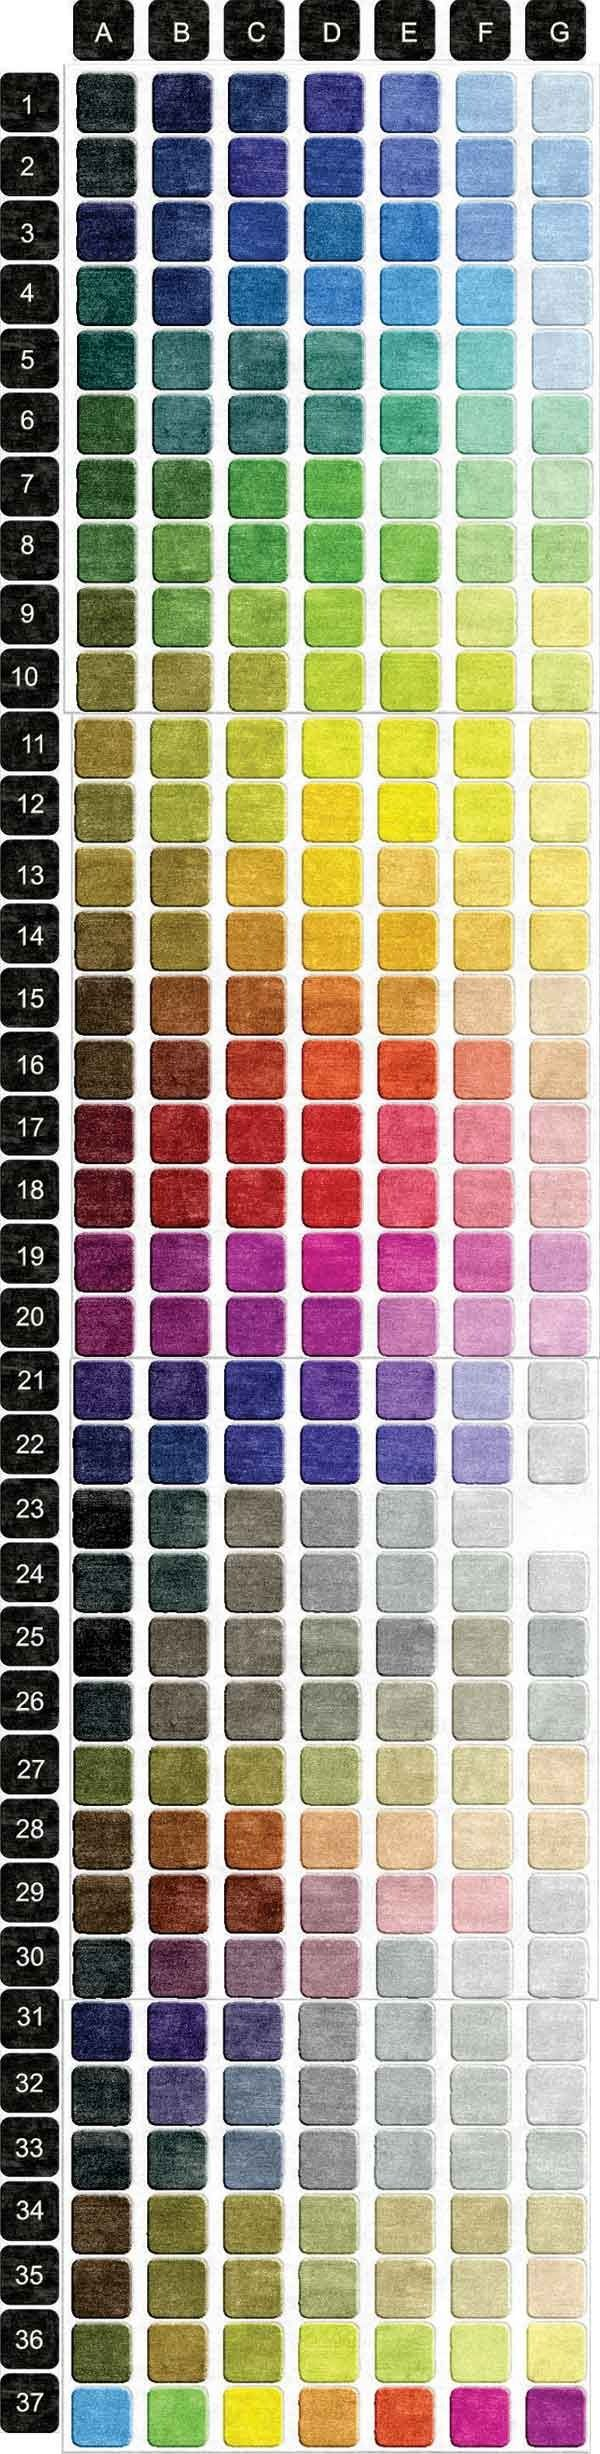 845 Best Images About Color Thesaurus Wheels And